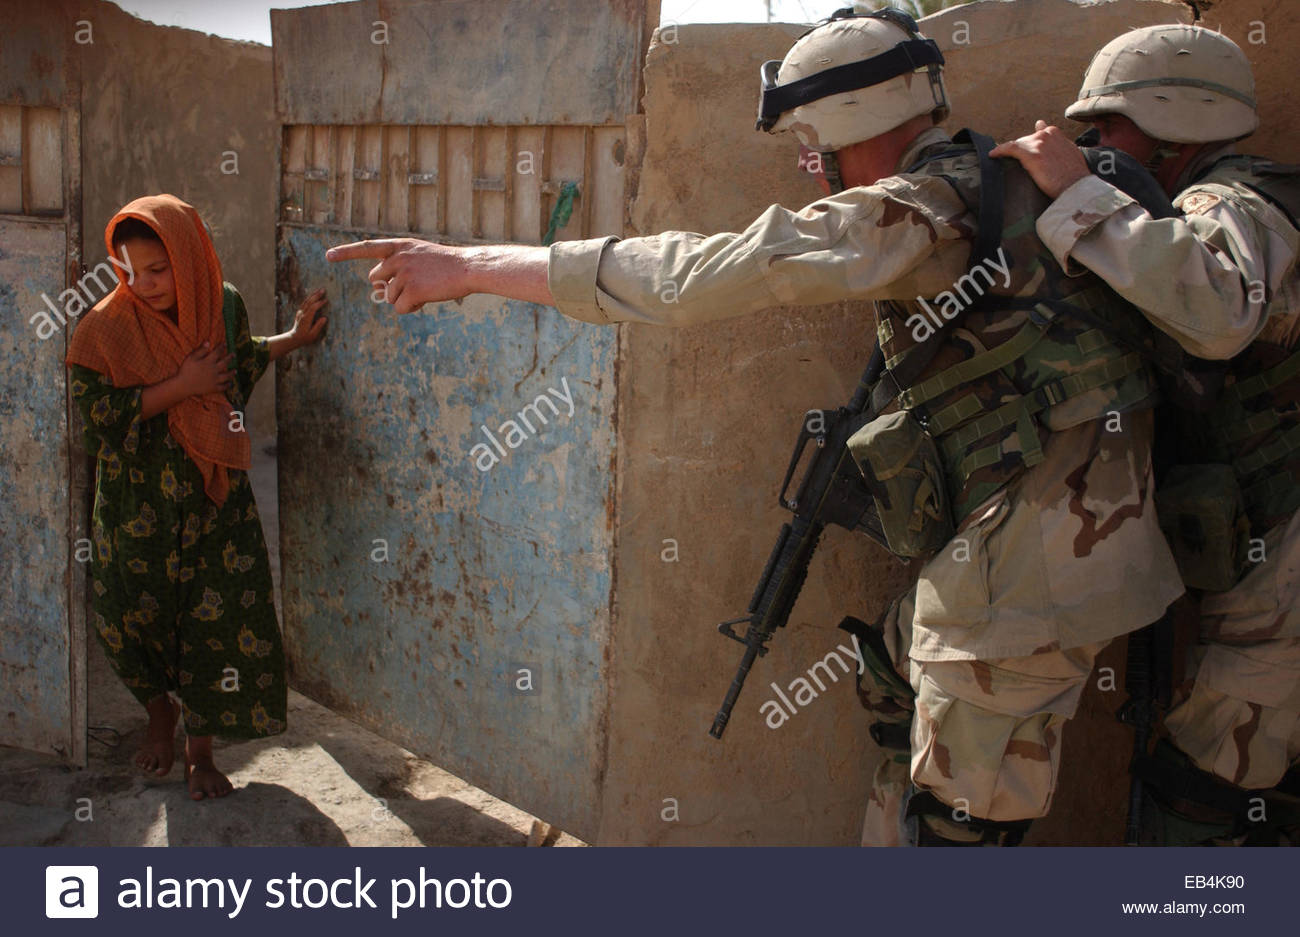 Soldiers from the 1st Squadron, 2nd Armored Cavalry Regiment order an Iraqi girl from her home before they enter - Stock Image